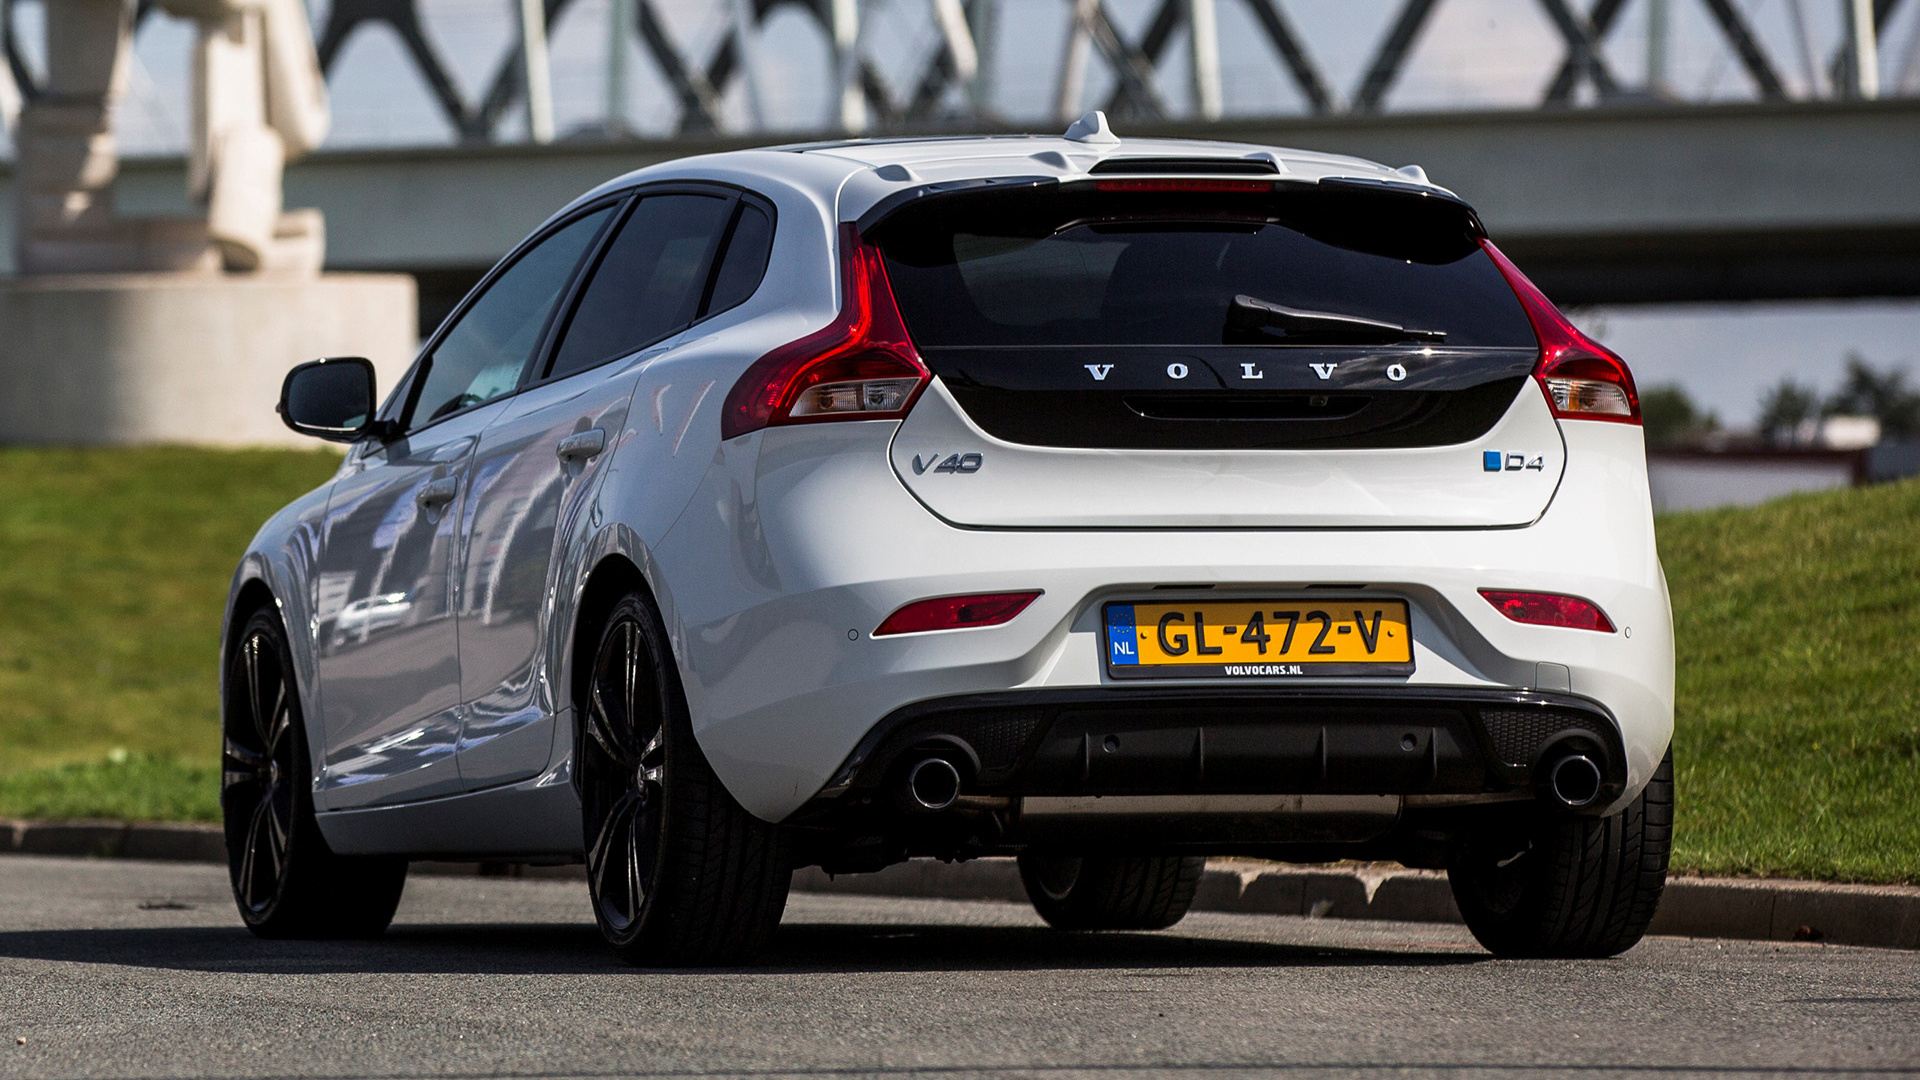 2015 Volvo V40 Carbon Edition   Wallpapers and HD Images Car Pixel 1920x1080